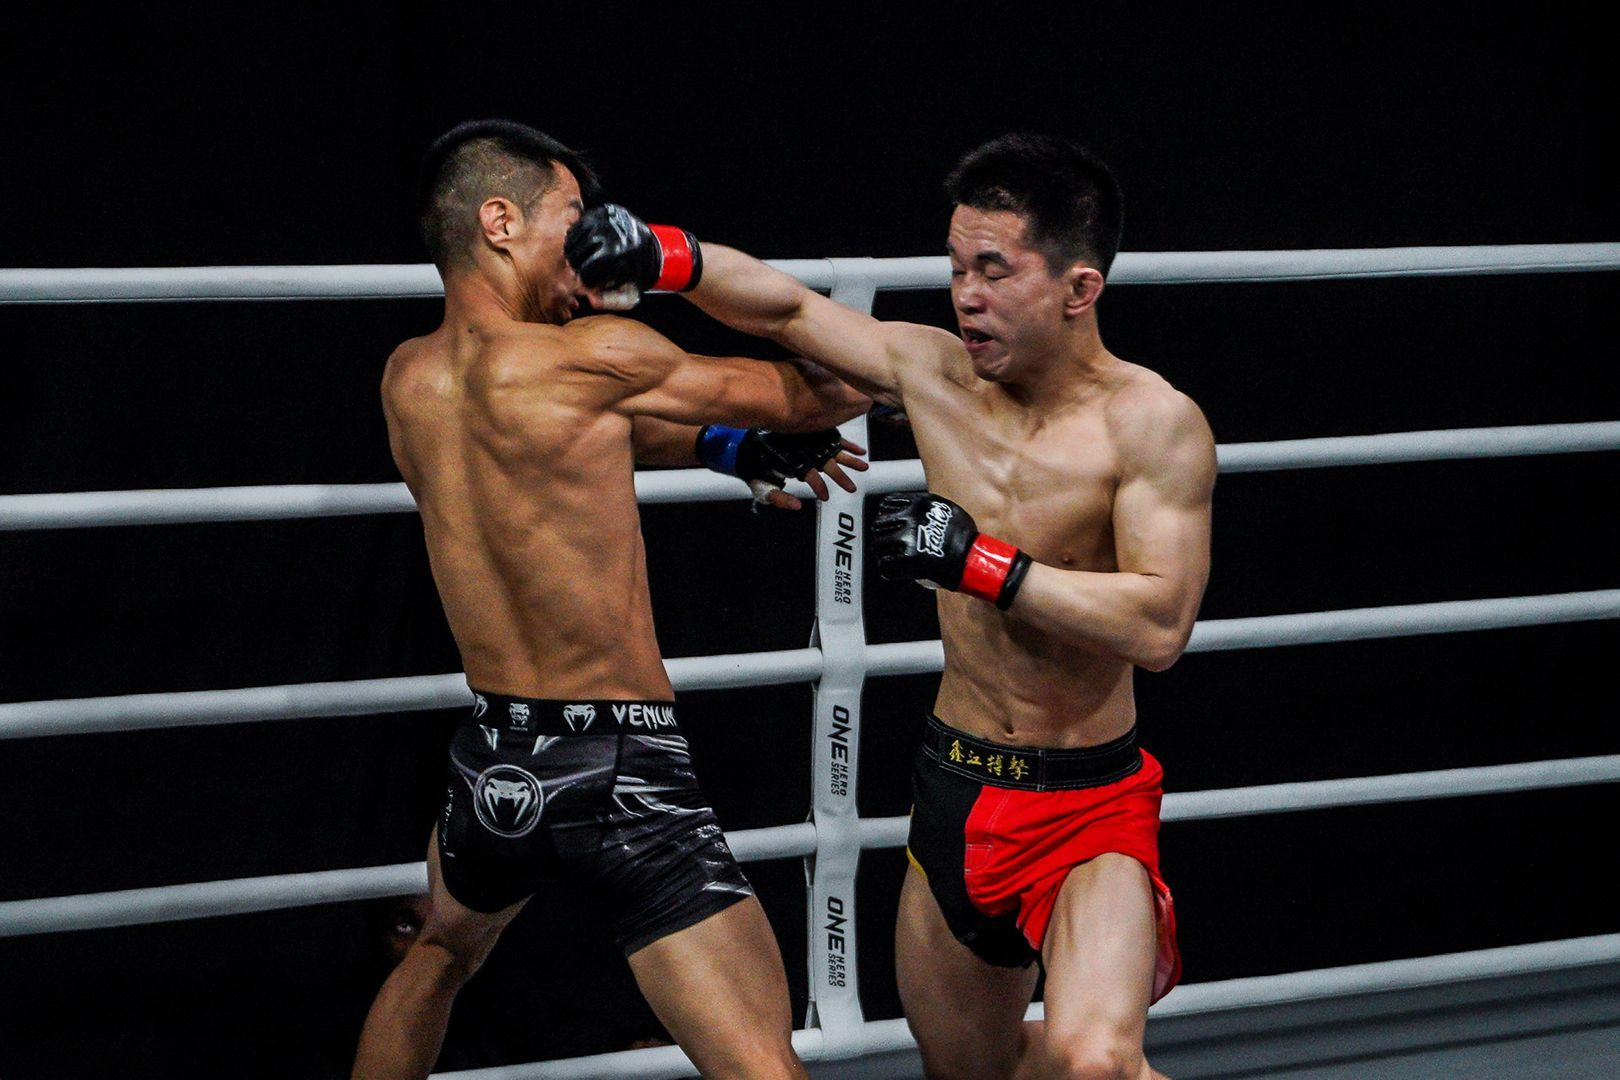 Xie Wei defeats Yang Fu Chong at ONE Hero Series April